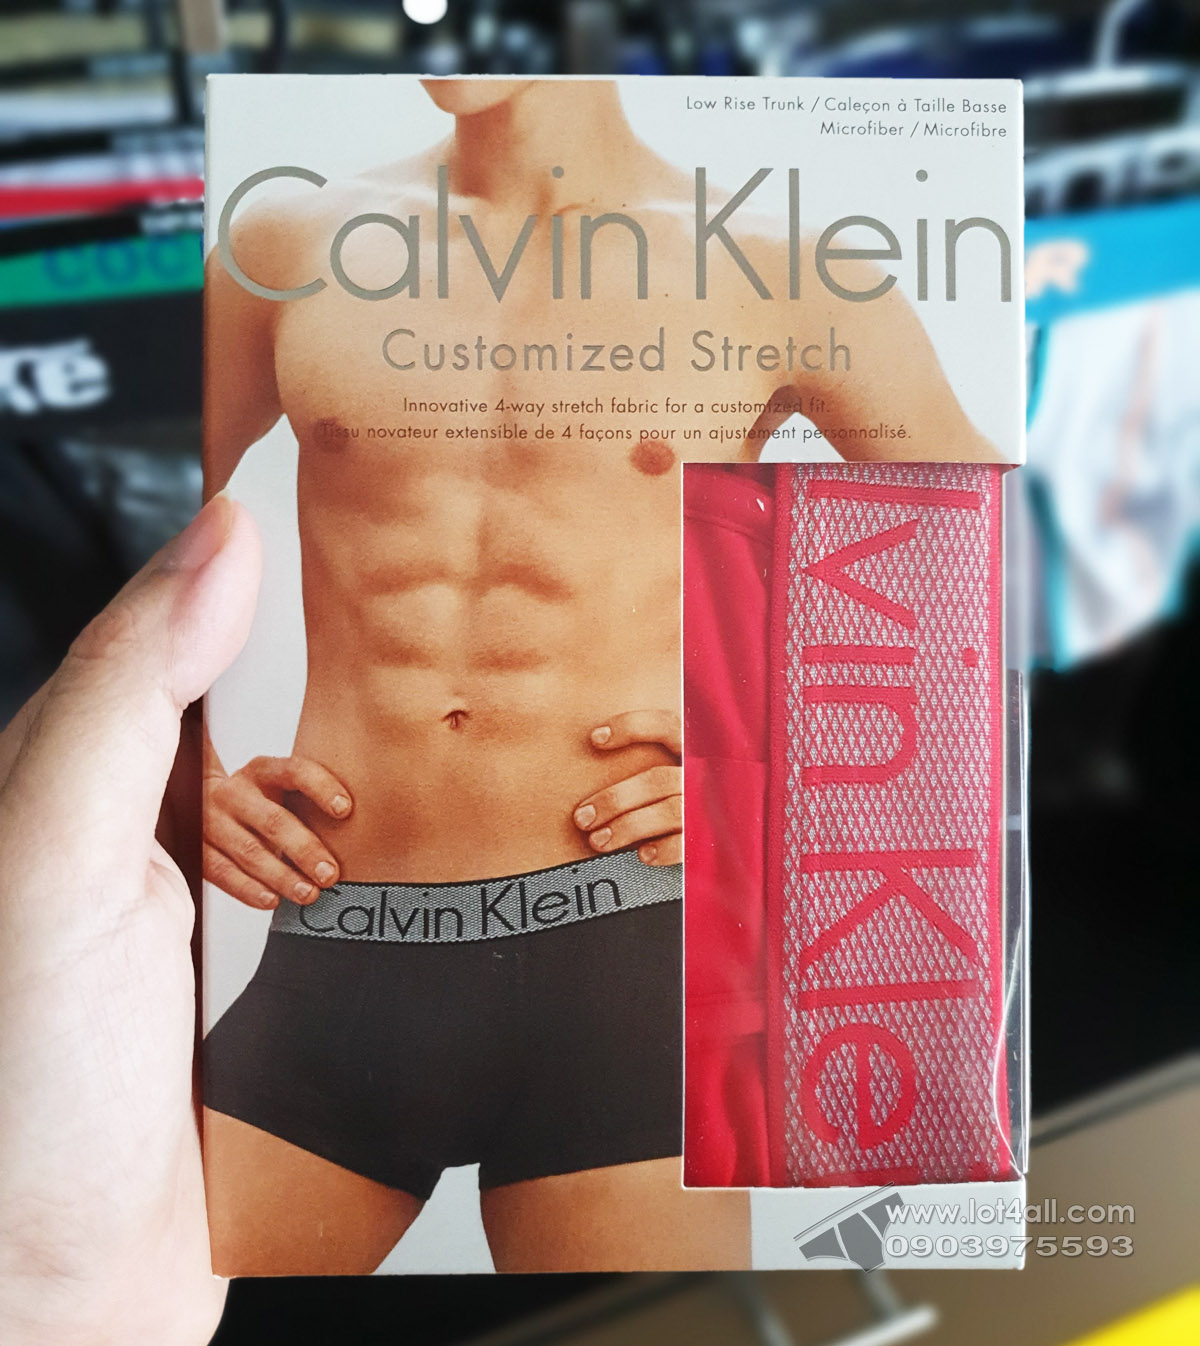 Quần lót nam Calvin Klein NB1295 Customized Stretch Low Rise Trunk Impact